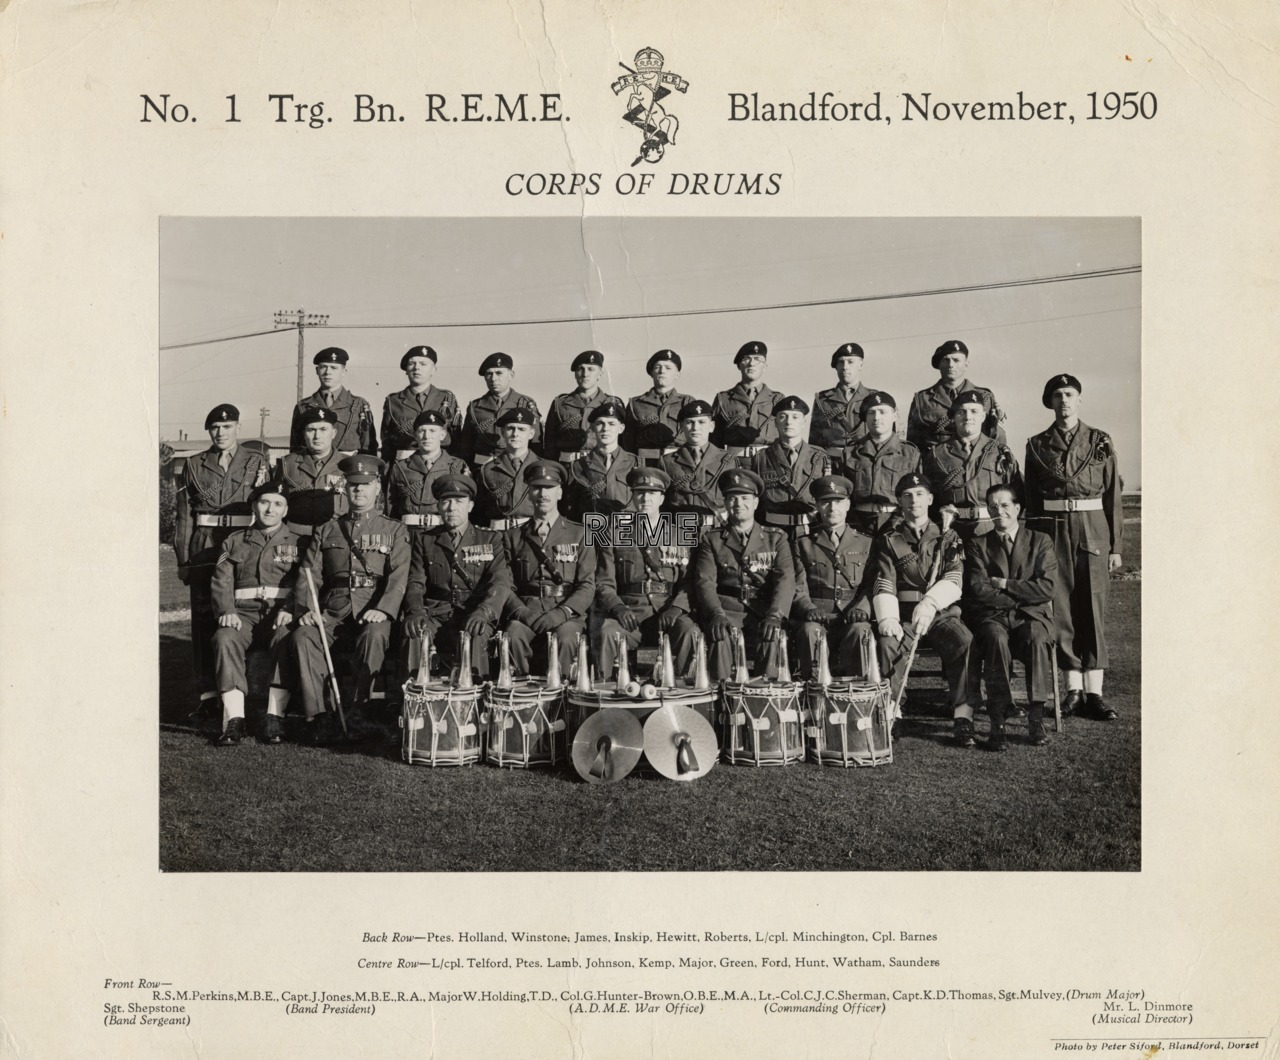 No 1 Training Battalion REME, Corps of Drums, Blandford